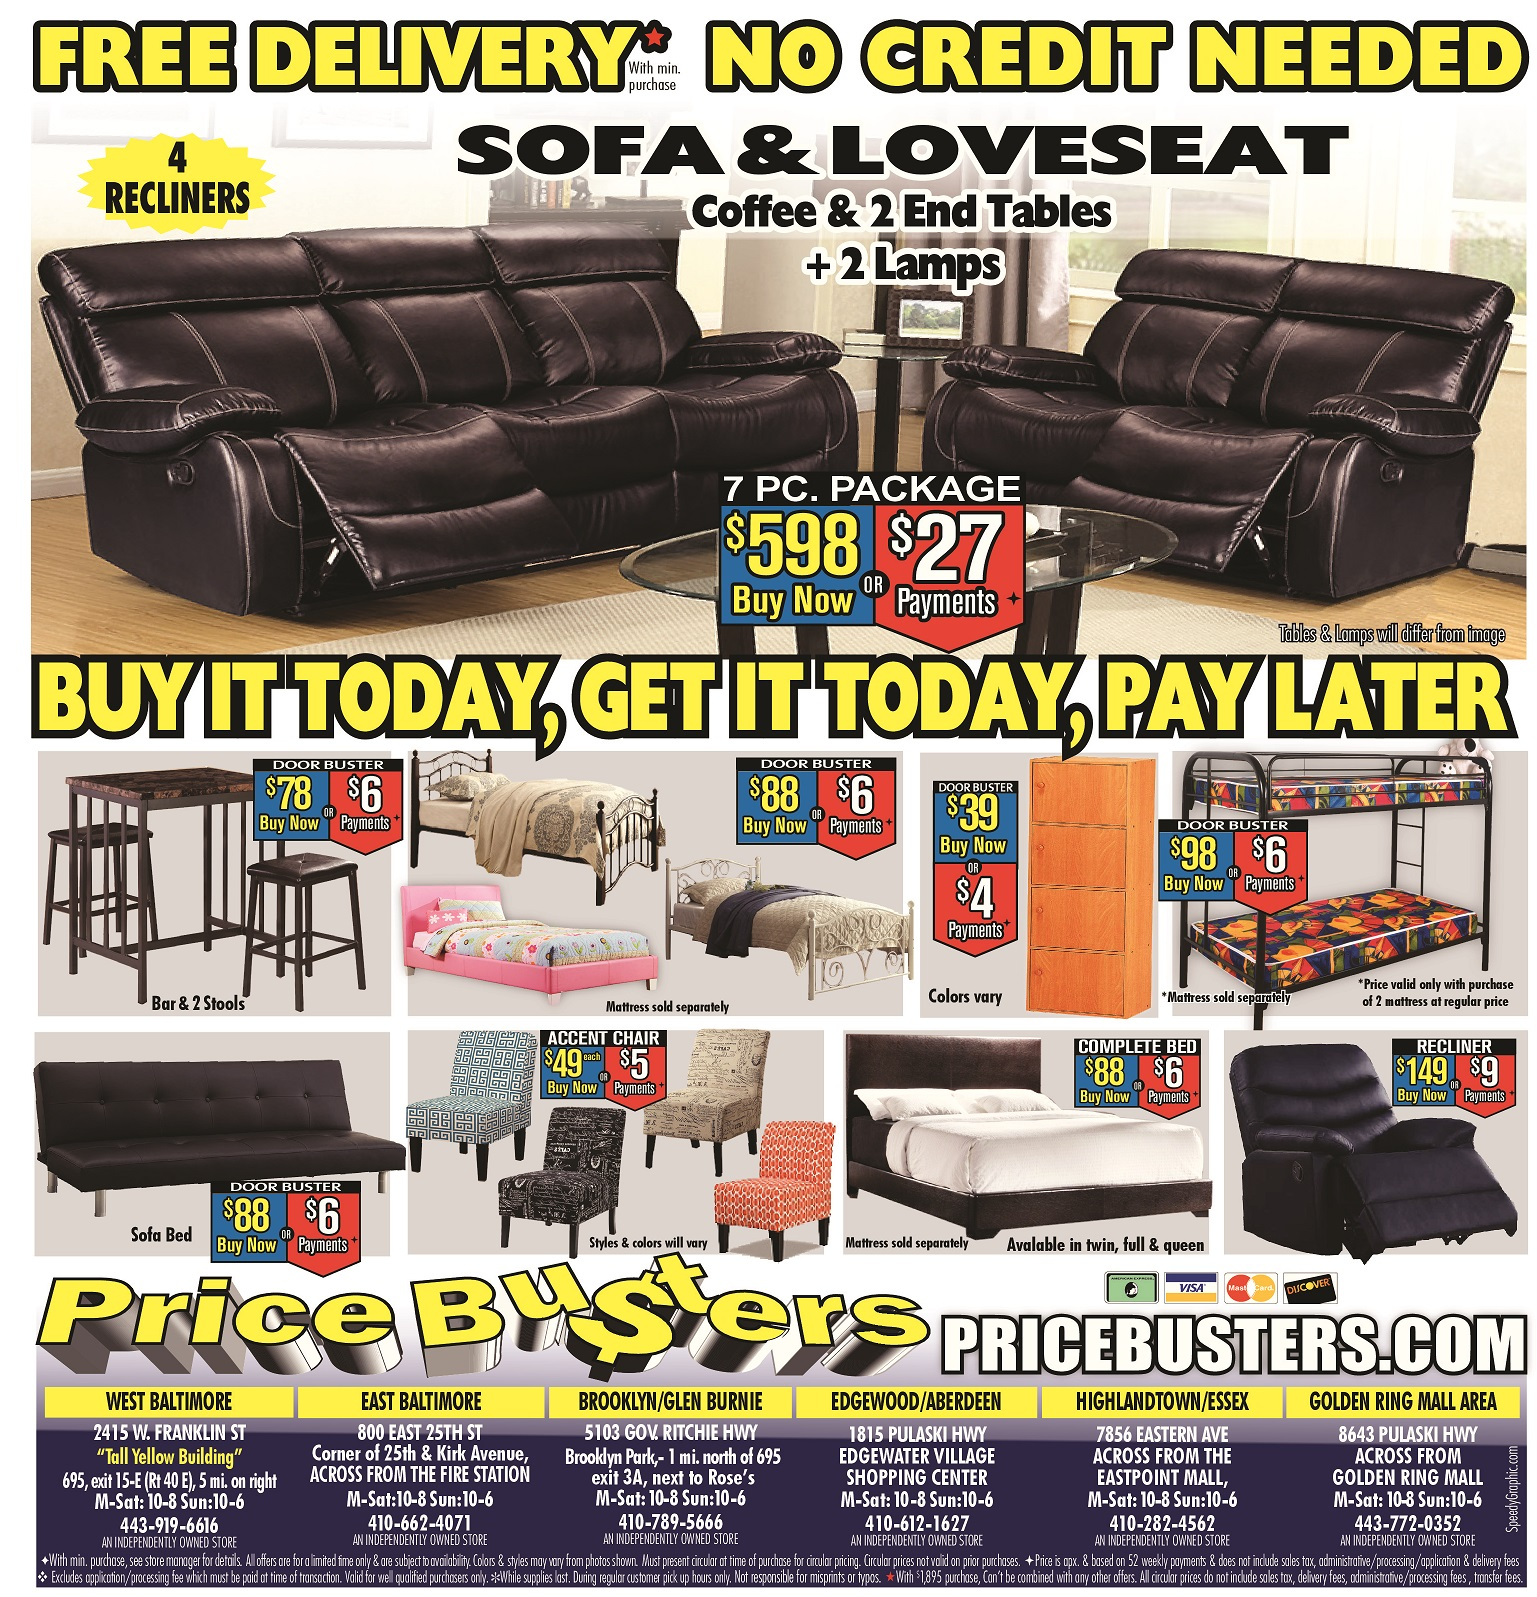 Price busters discount furniture in edgewood md 21040 for Shop cheap furniture online